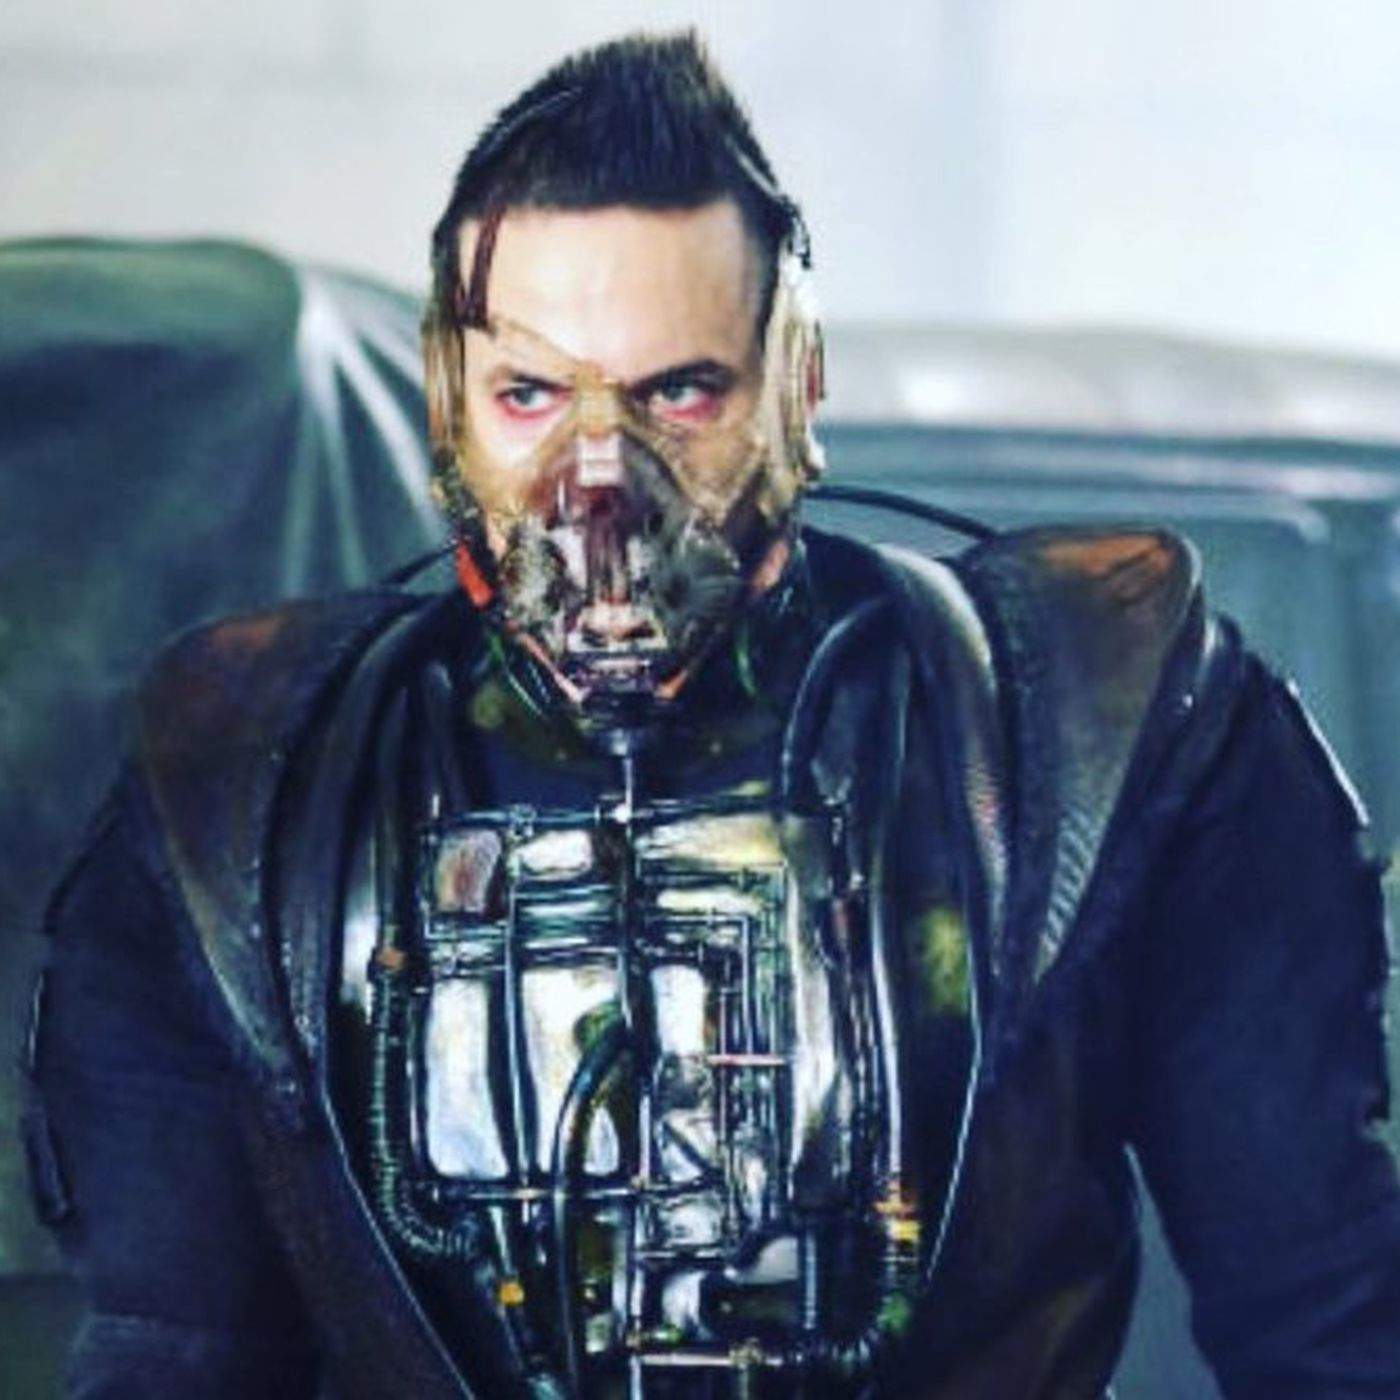 Gotham's Bane is actually Bane's father